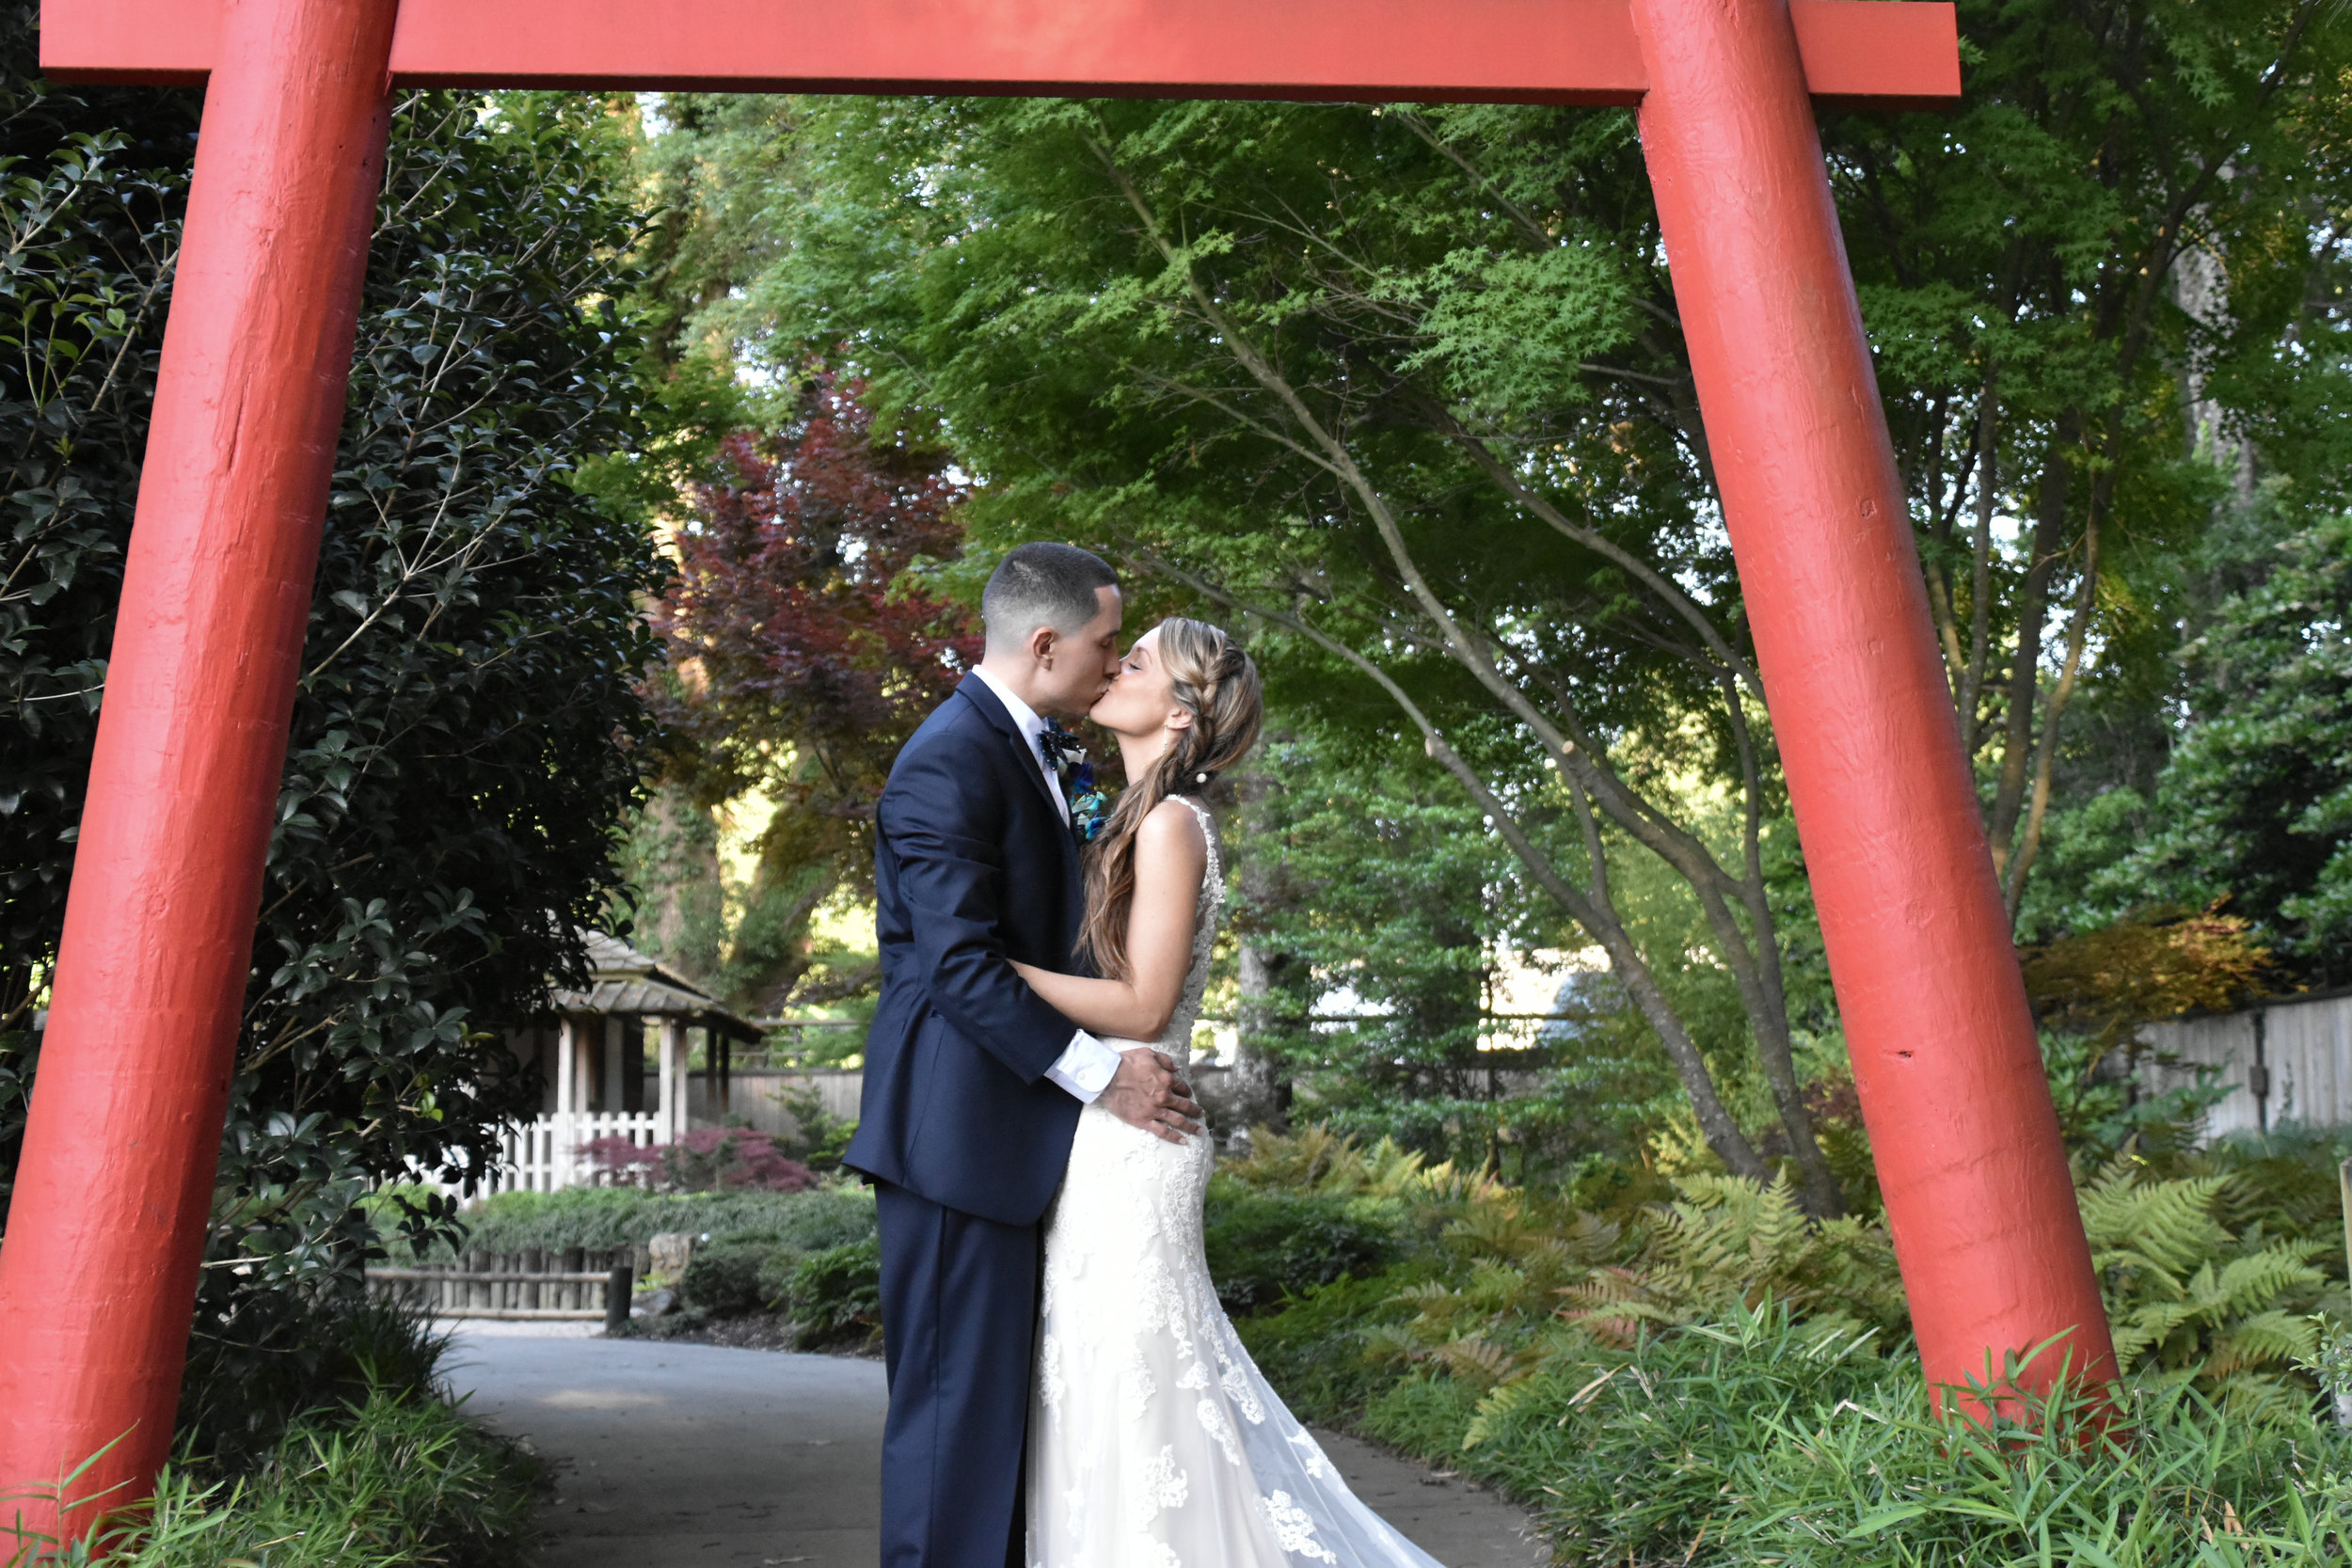 Torii - A kiss under the Torii gate at the Arboretum in Wilmington, NC. Japanese Tea House in background. Photos taken post ceremony at Terraces on Sir Tyler.